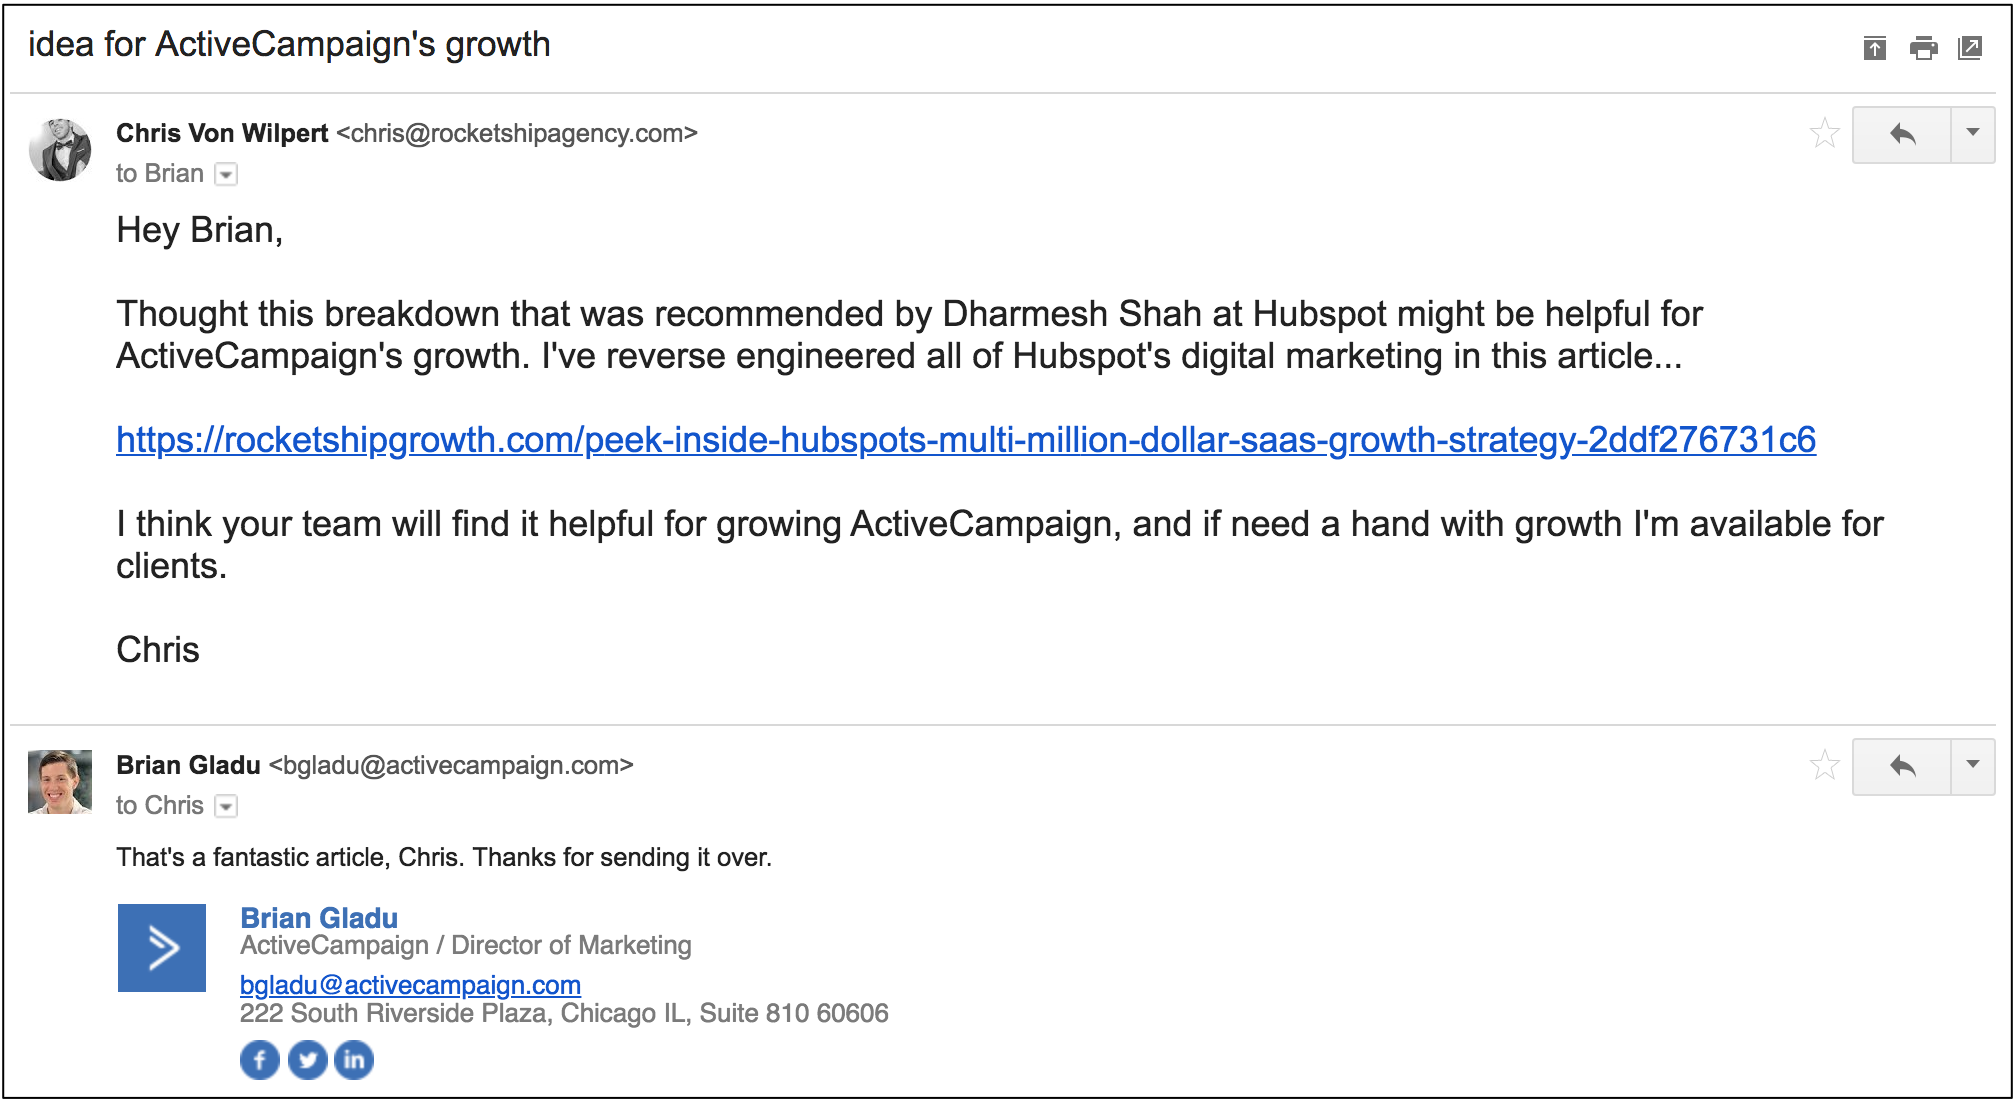 dream 100 email to ActiveCampaign Director of Marketing